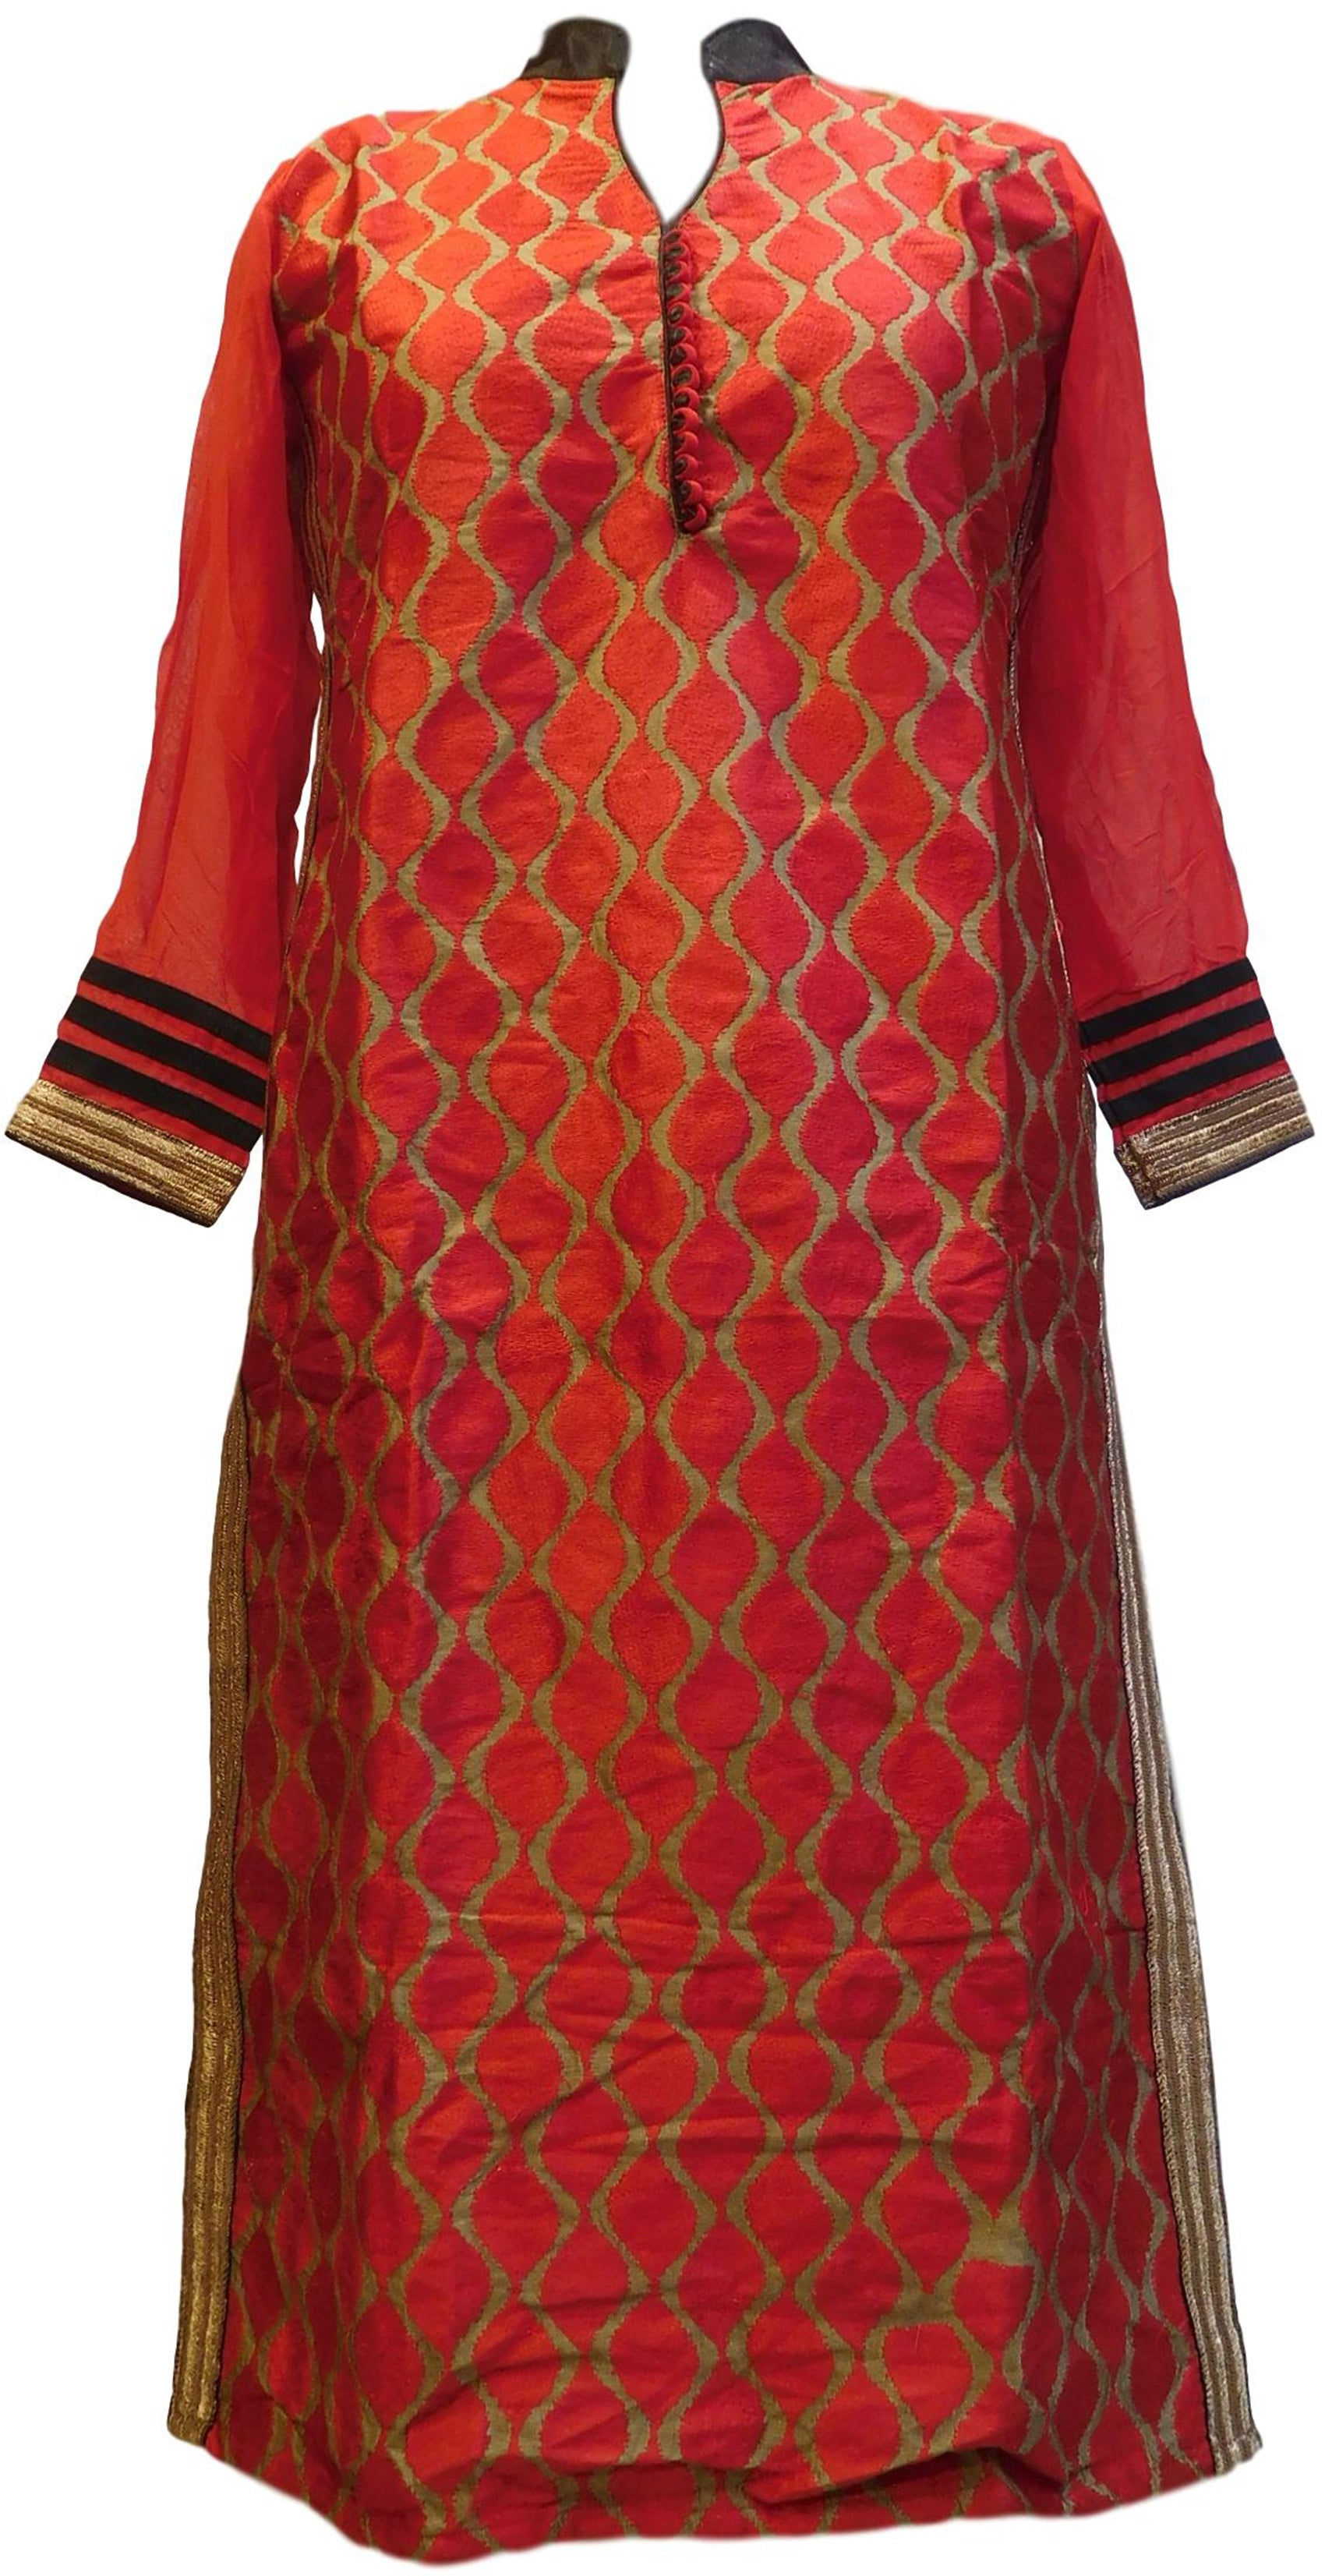 Pink Designer Cotton (Chanderi) Hand Embroidery Zari Thread Work PartyWear Bollywood Style Kurti Kurta